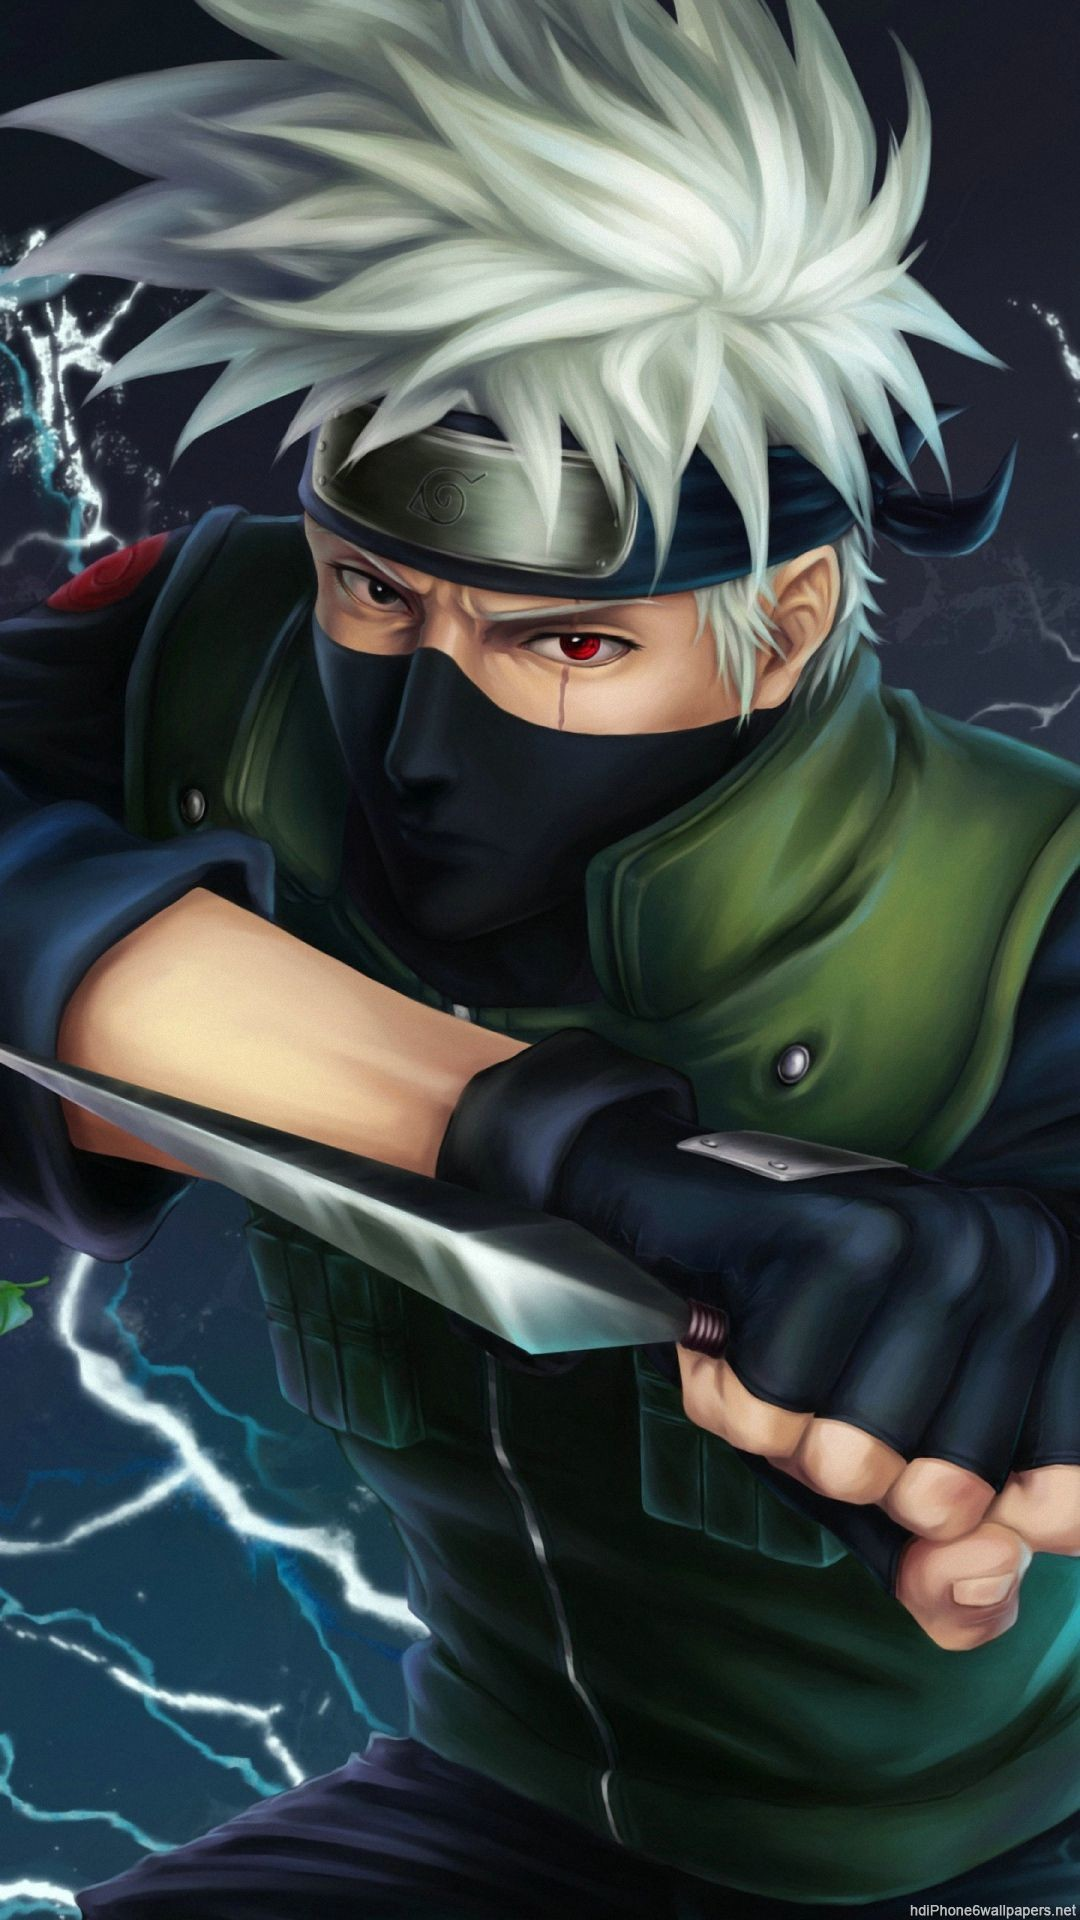 Res: 1080x1920, 3D Kakashi Wallpaper iPhone is high definition phone wallpaper. You can  make this wallpaper for your iPhone 5, 6, 7, 8, X backgrounds, Tablet, ...